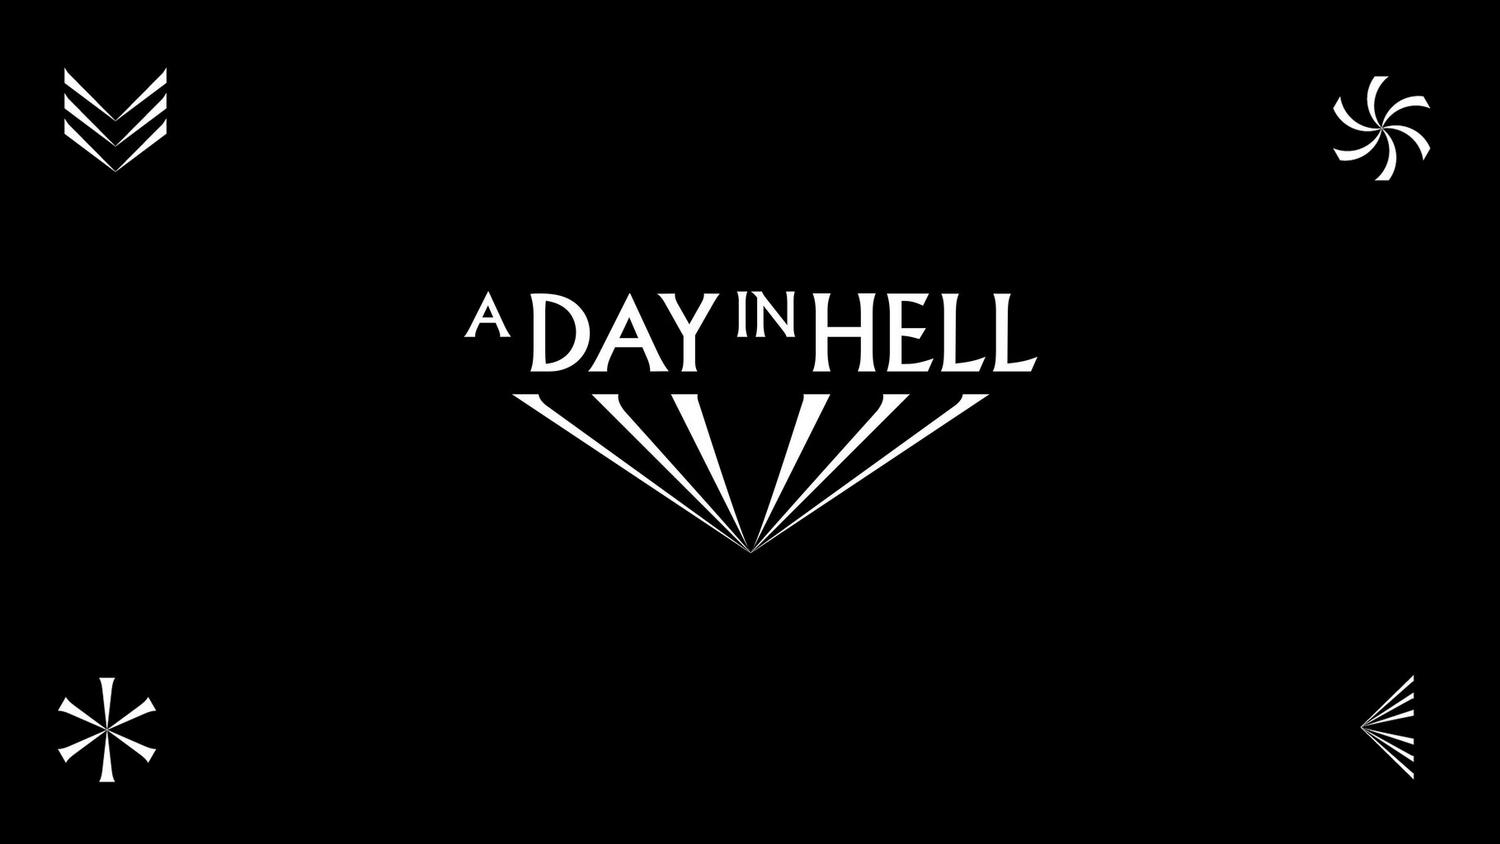 A Day in Hell